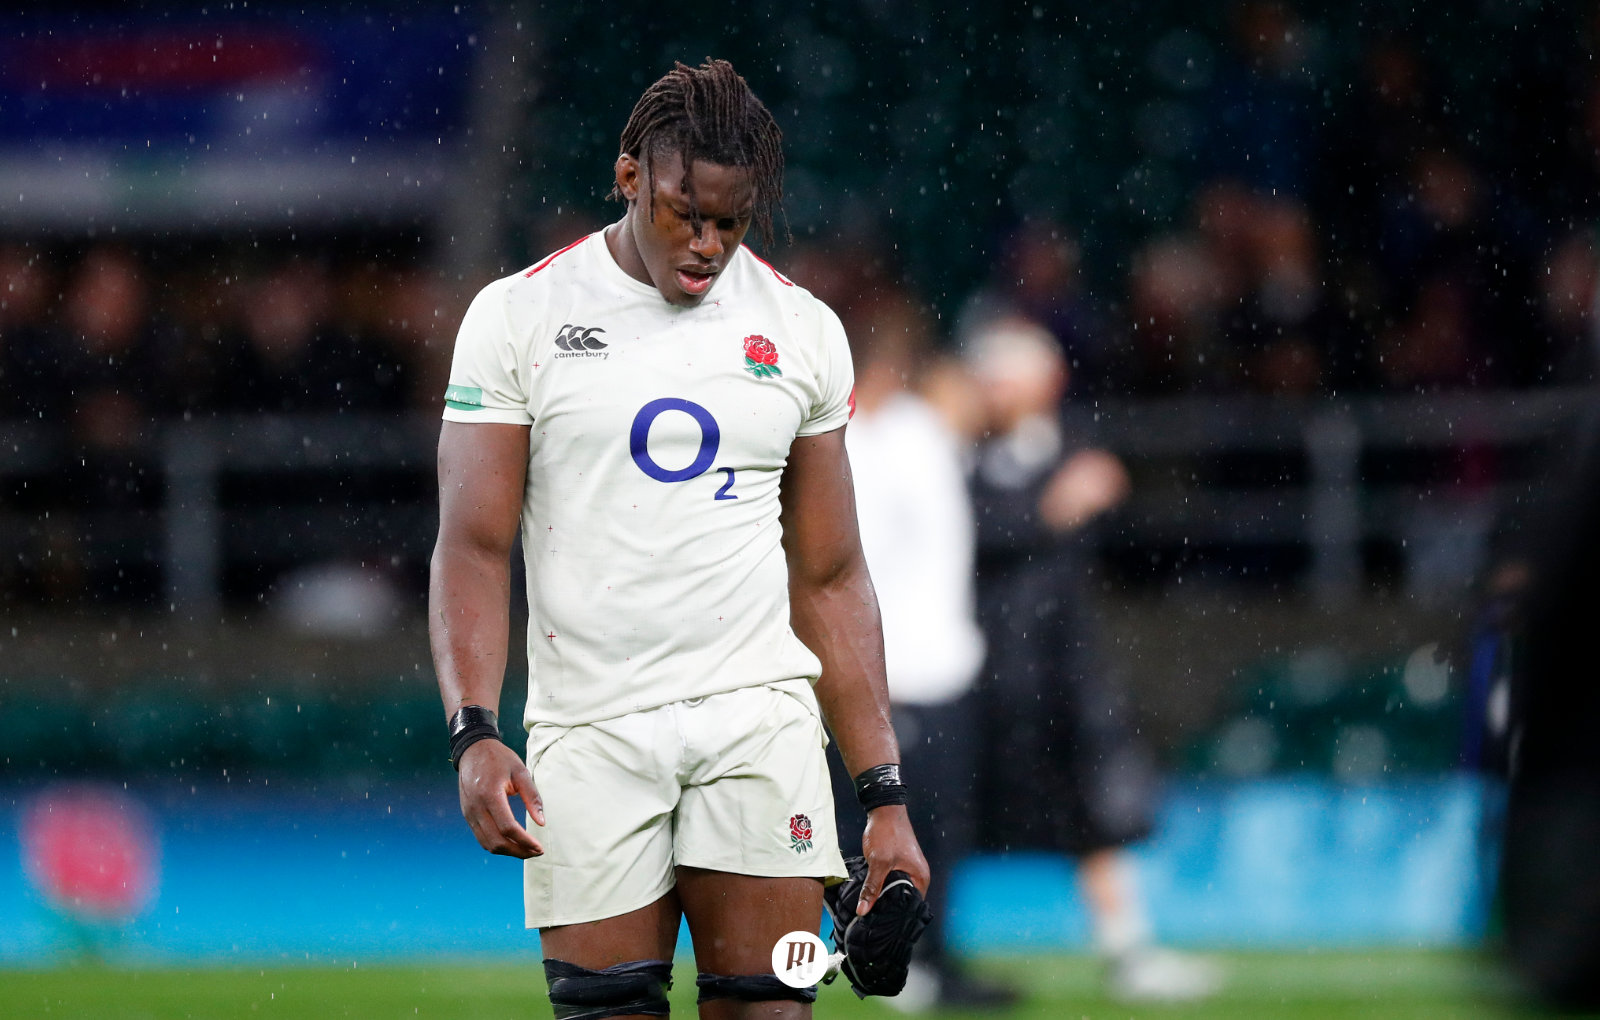 Will England overcome the vital errors that derailed their 2018?